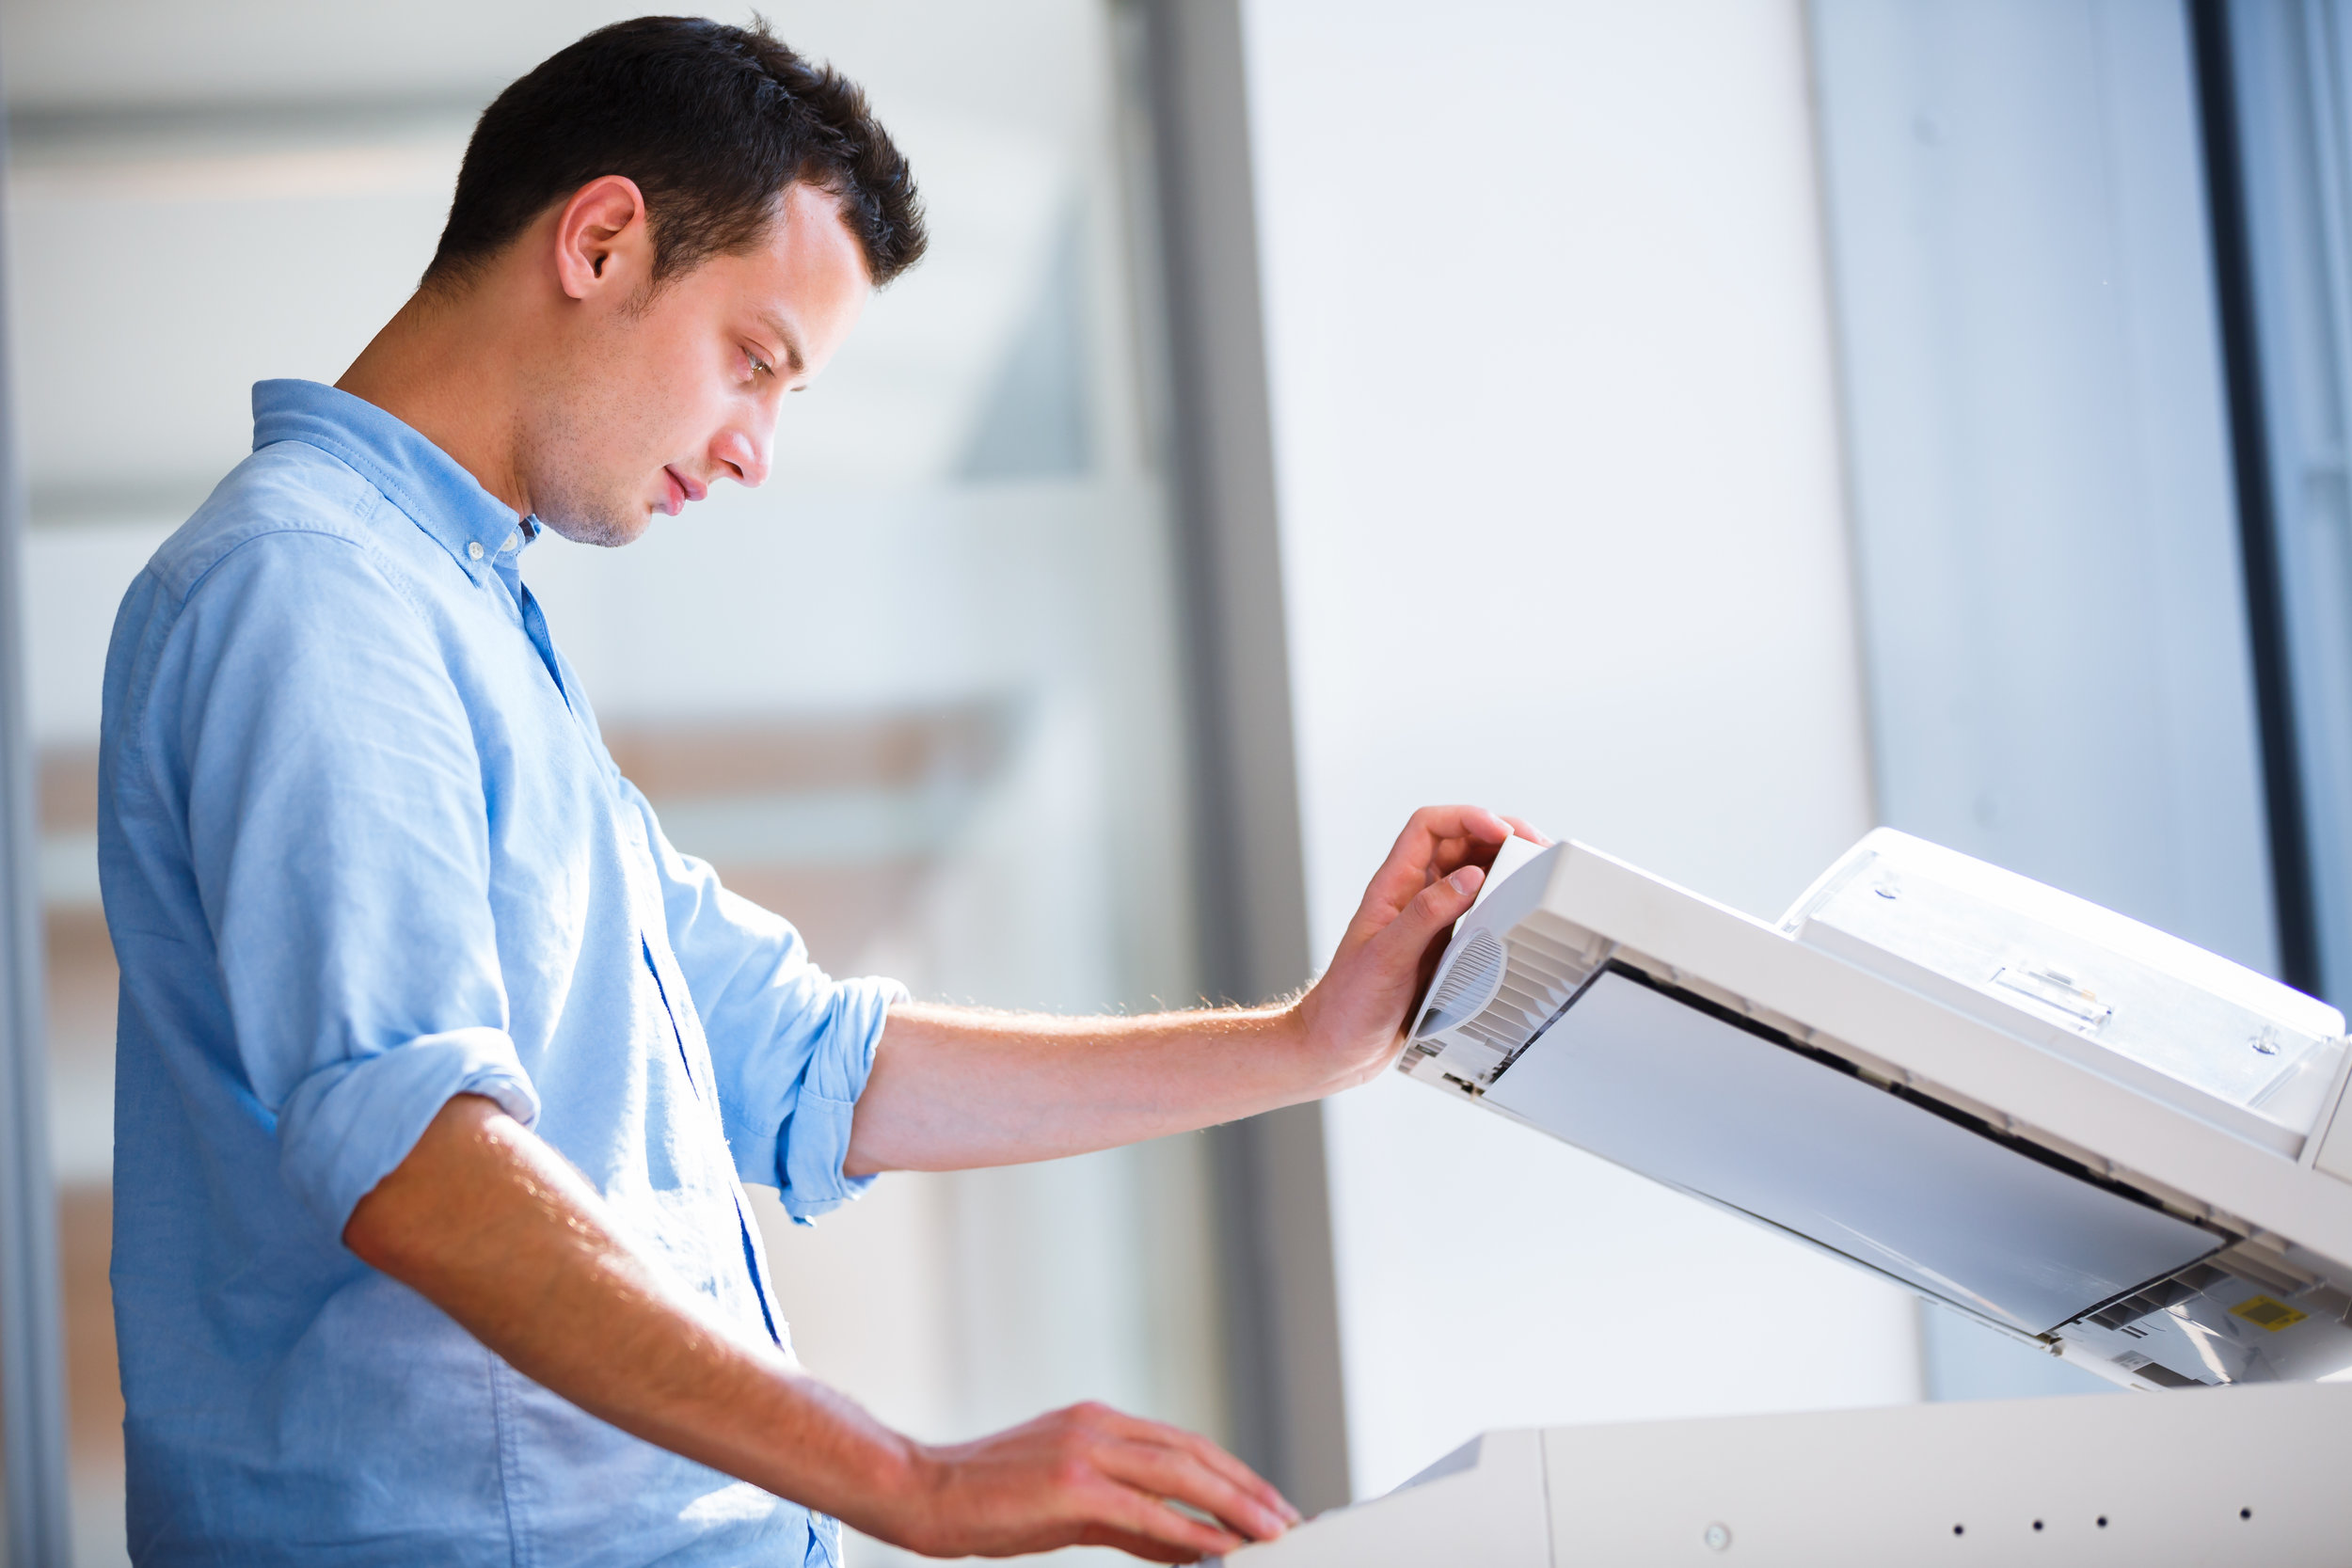 Print Services - The ability to quickly and cost effectively print and duplicate documents is the cornerstone of Print Management Services, which consist of document printing, finishing & distribution, and records management.